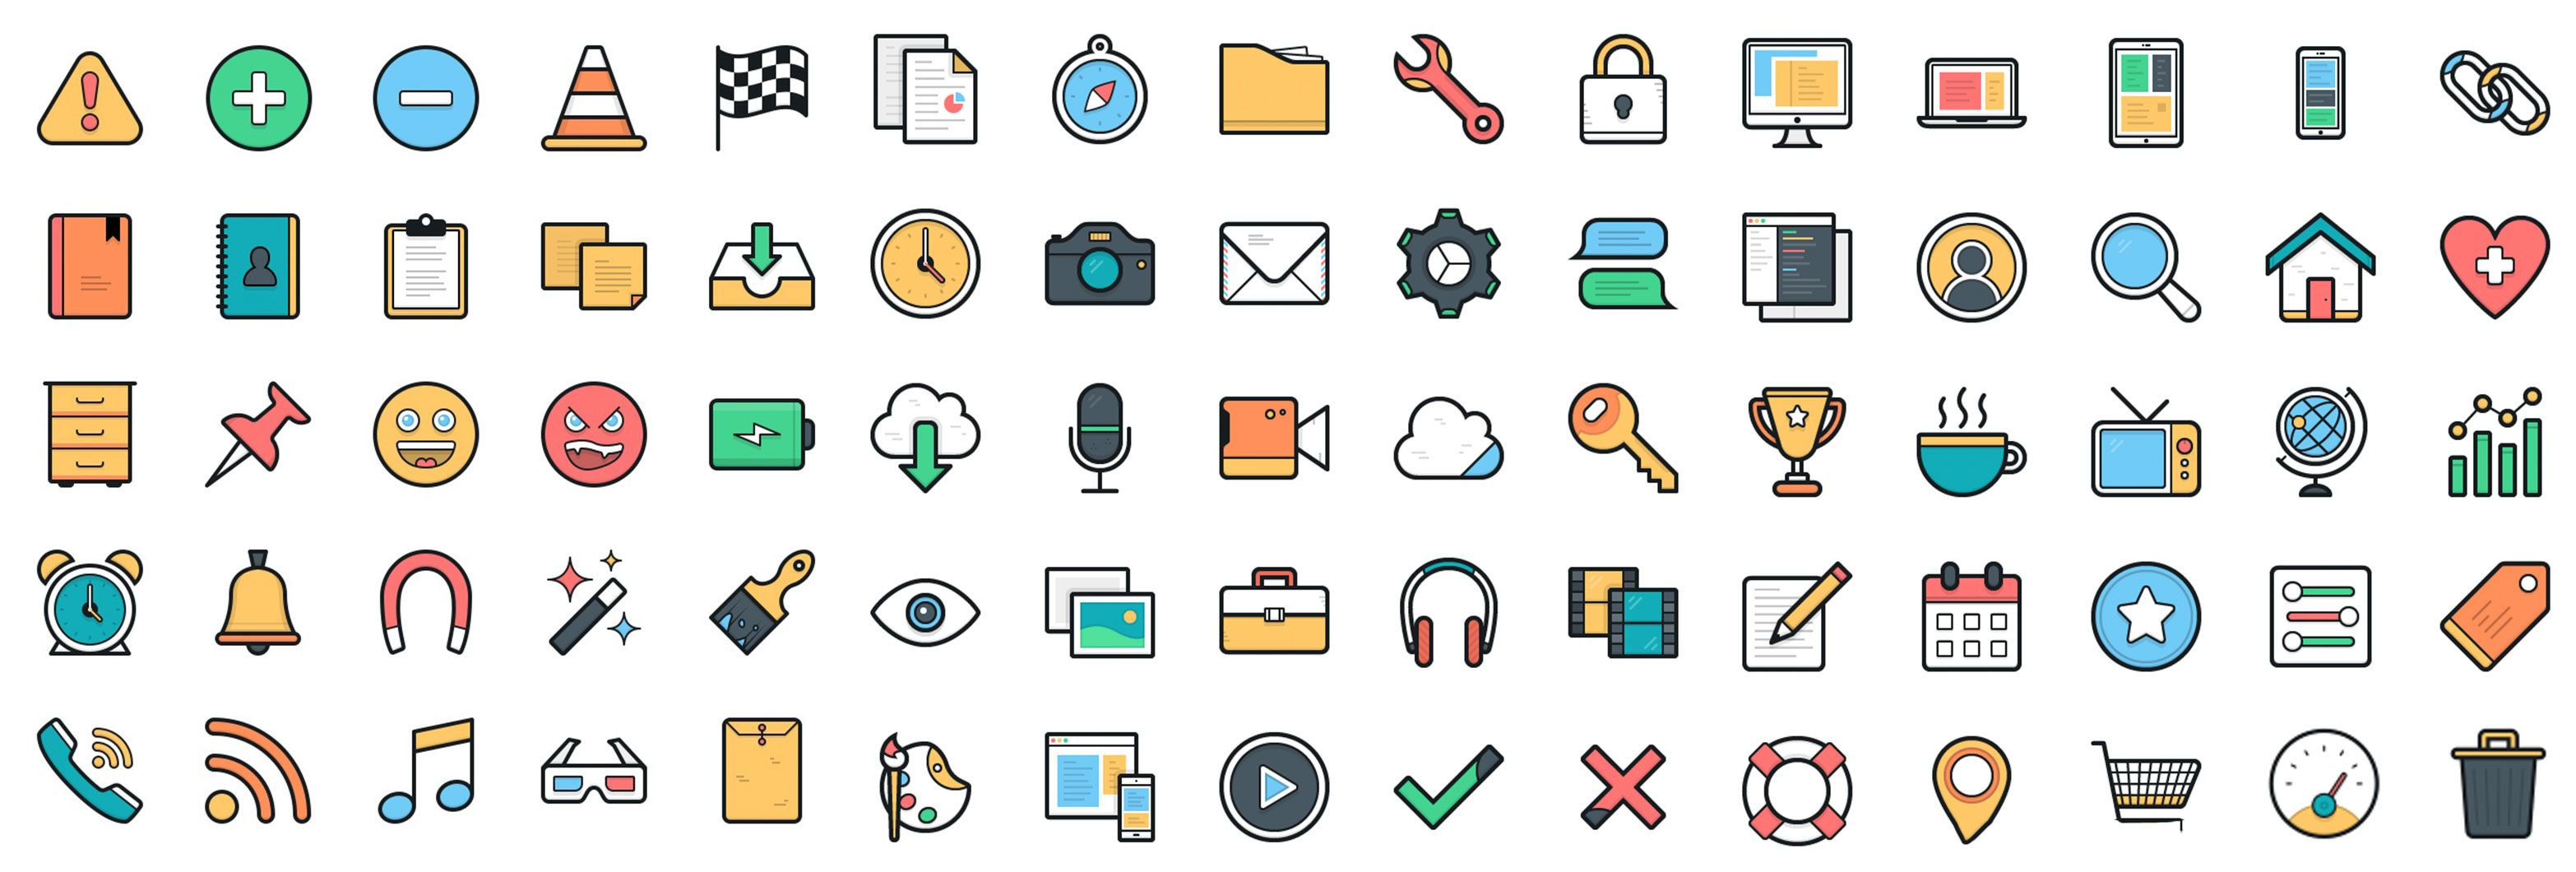 Download 100 Free Vector Icons